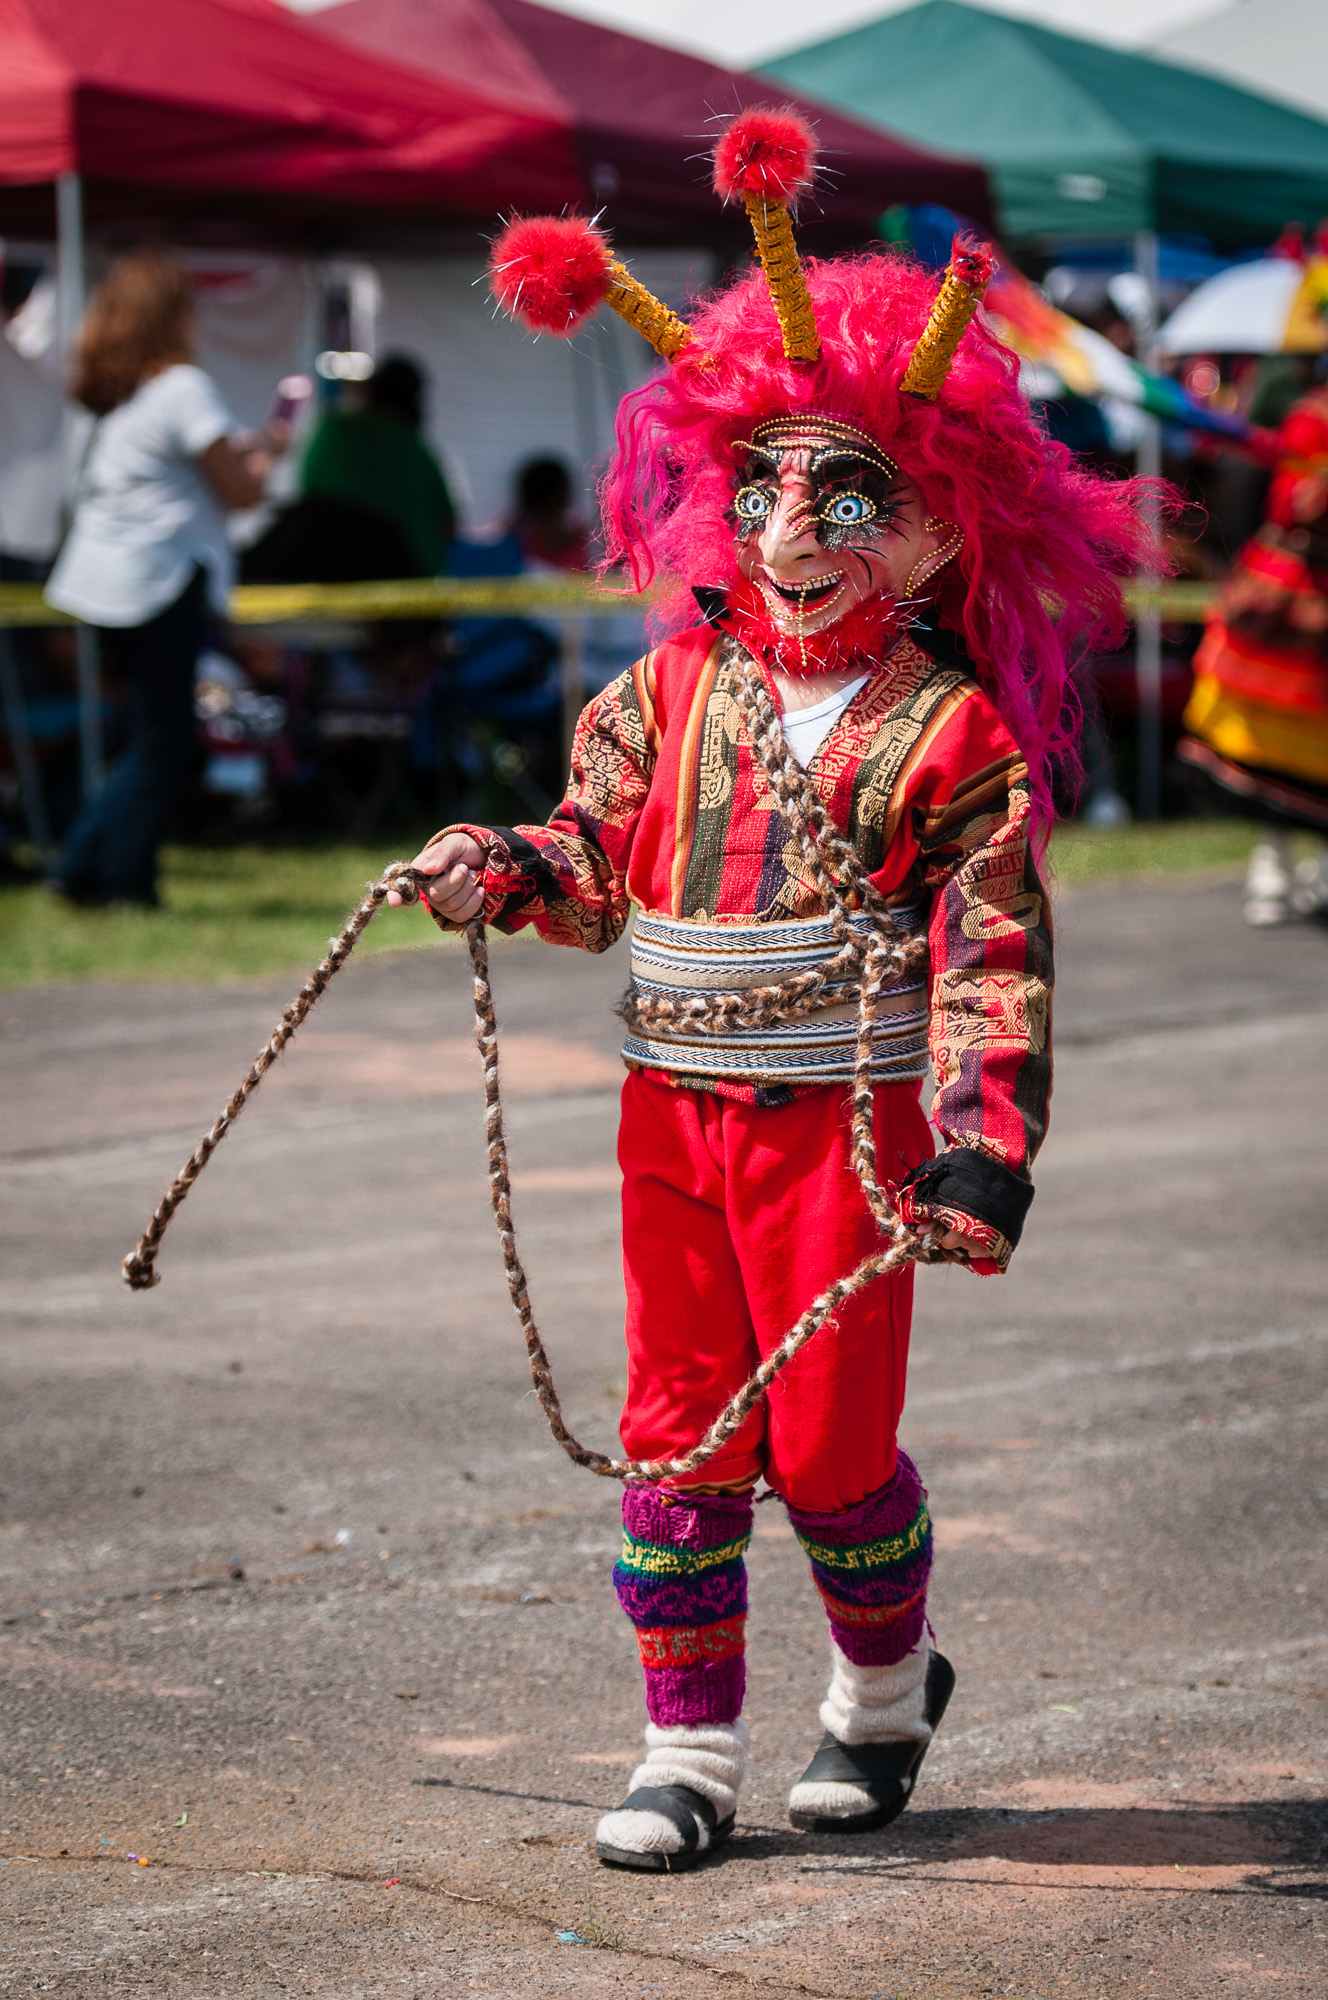 A young performer from Fundacion Socio Cultural Diablada Boliviana, fully in costume and performing during a Wititi dance.